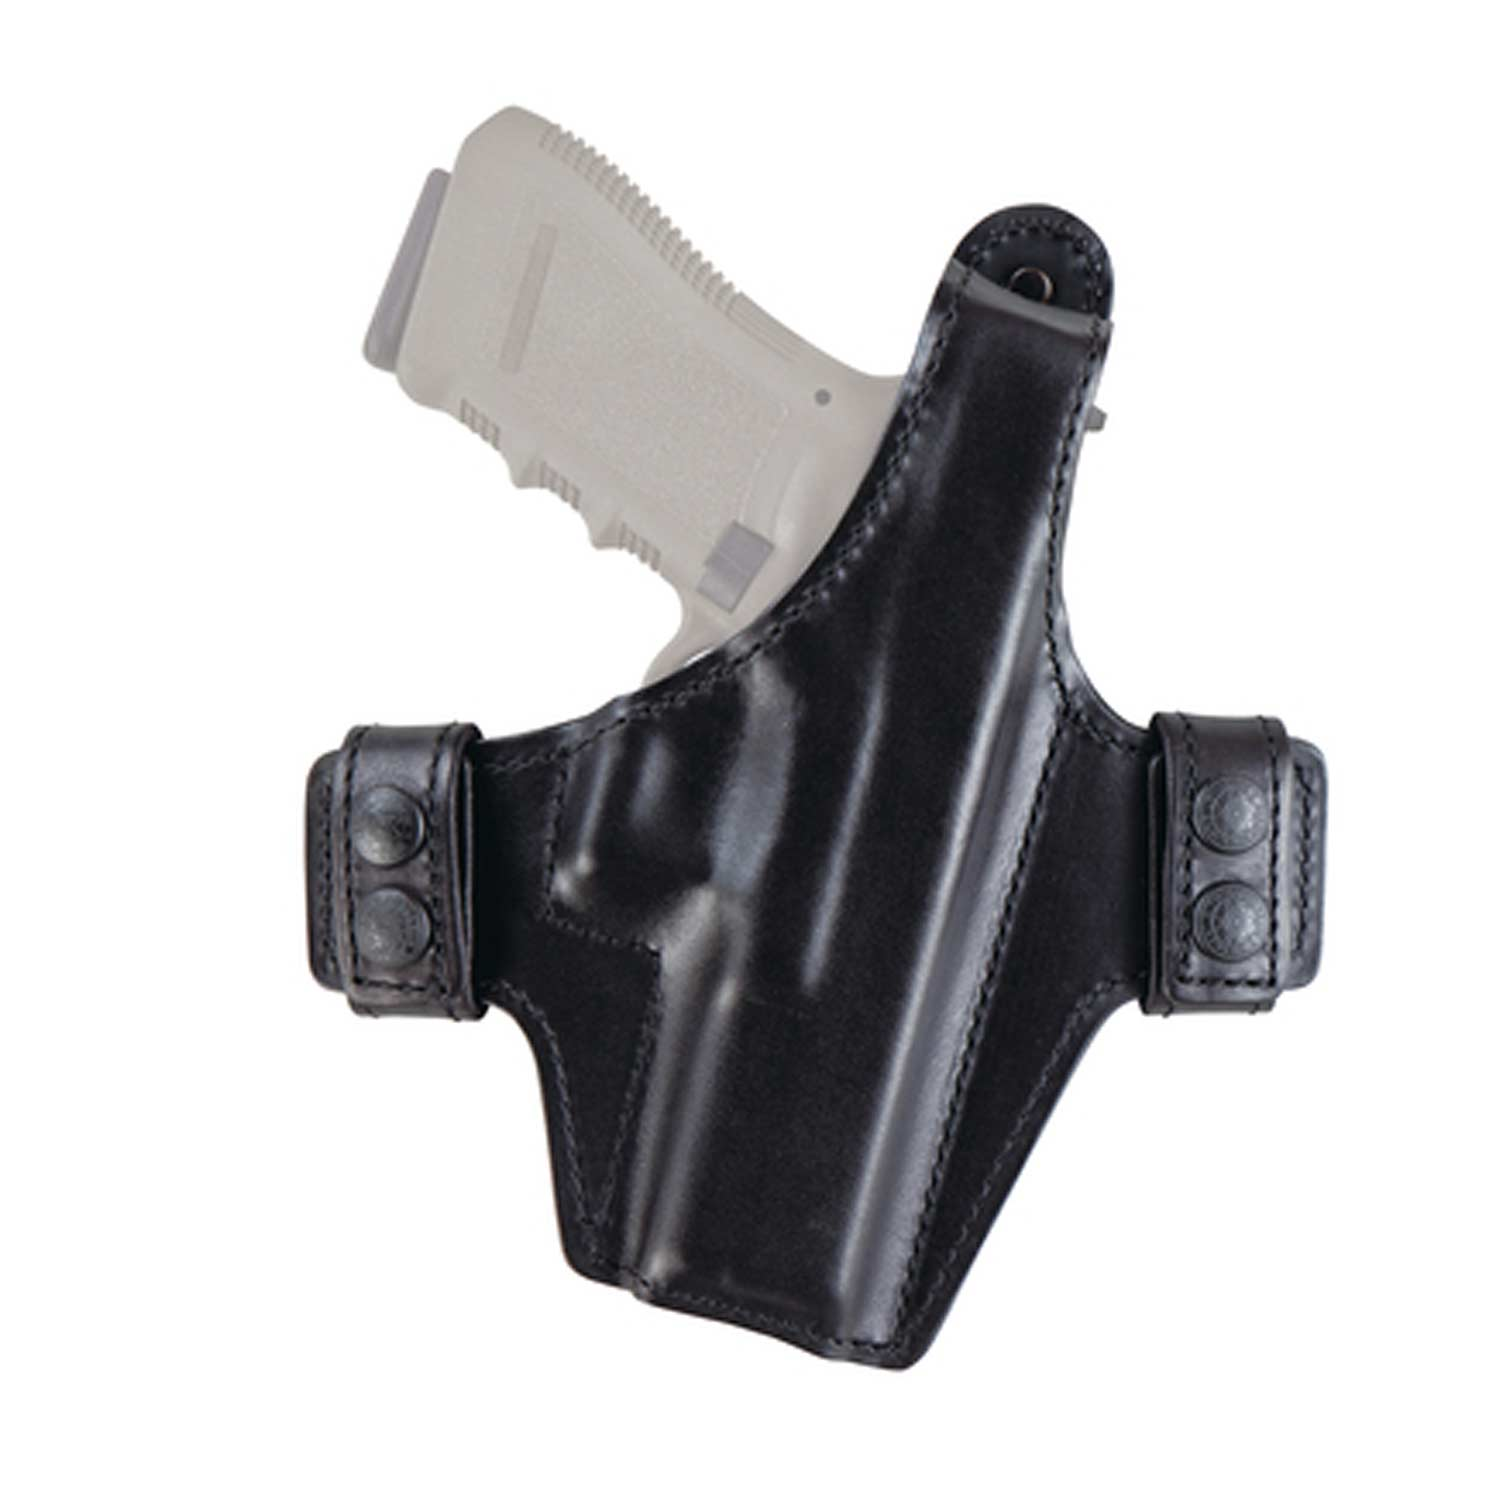 Bianchi Allusion Holster Model 130